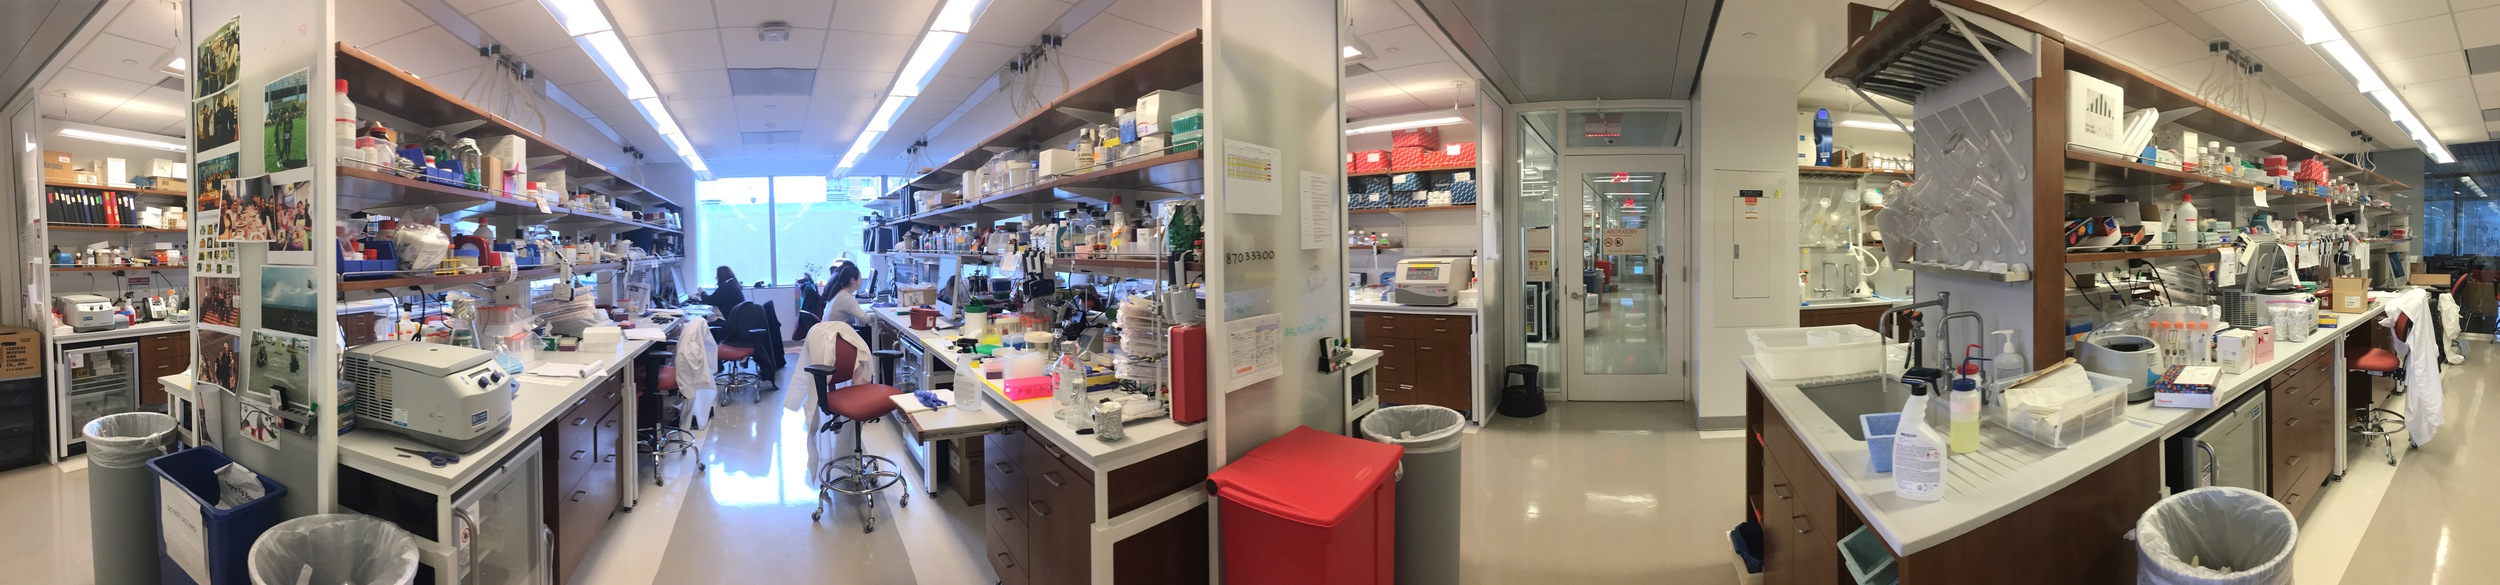 Main lab space on the 11th floor of Belfer Research Building.